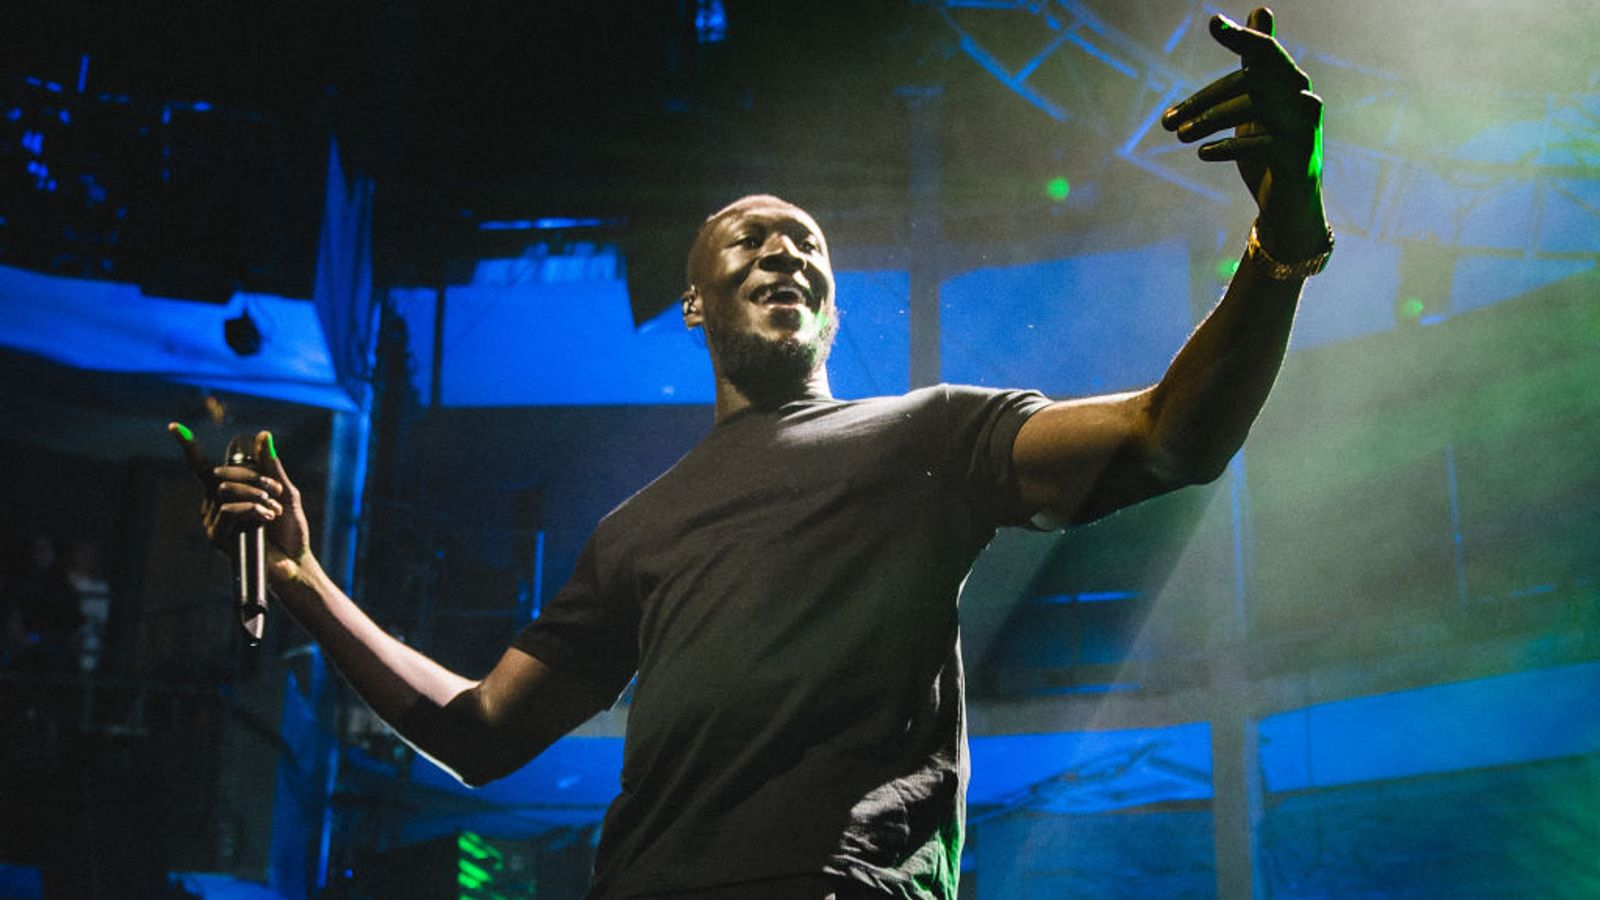 Stormzy's #Merky Books to launch 'How To' series on activism, writing and other topics